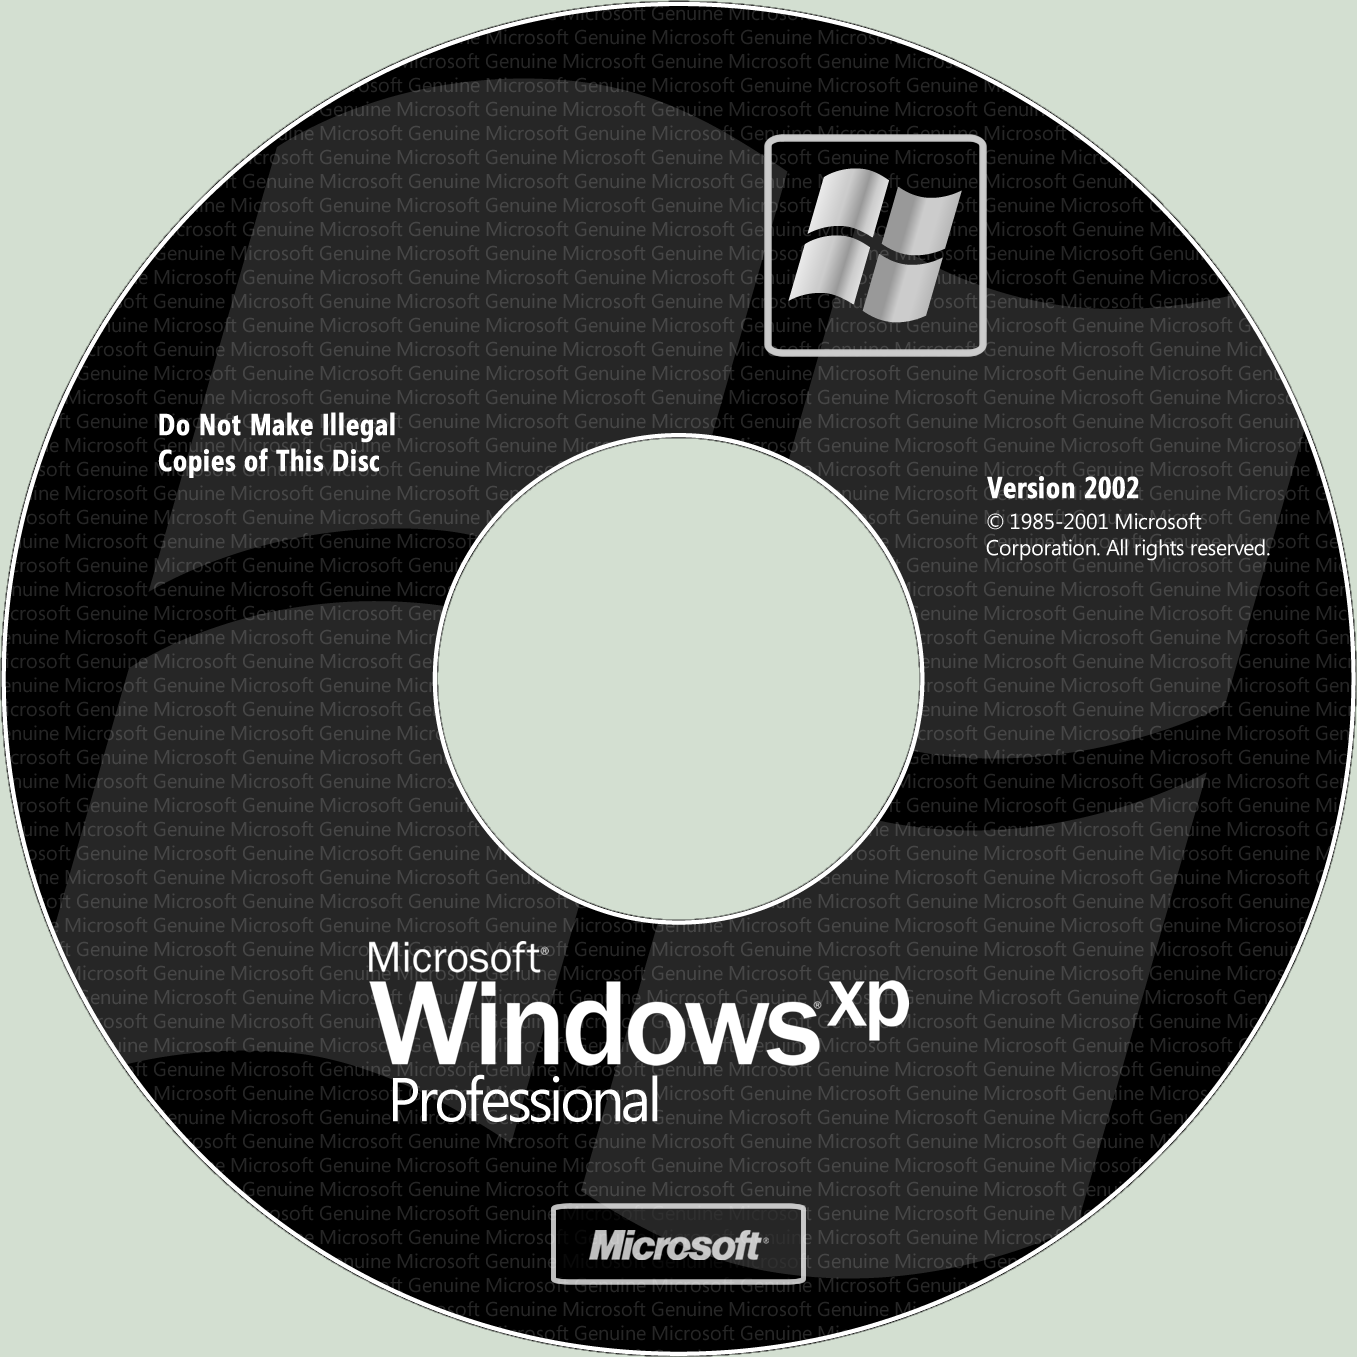 windows xp professional 64 bit edition